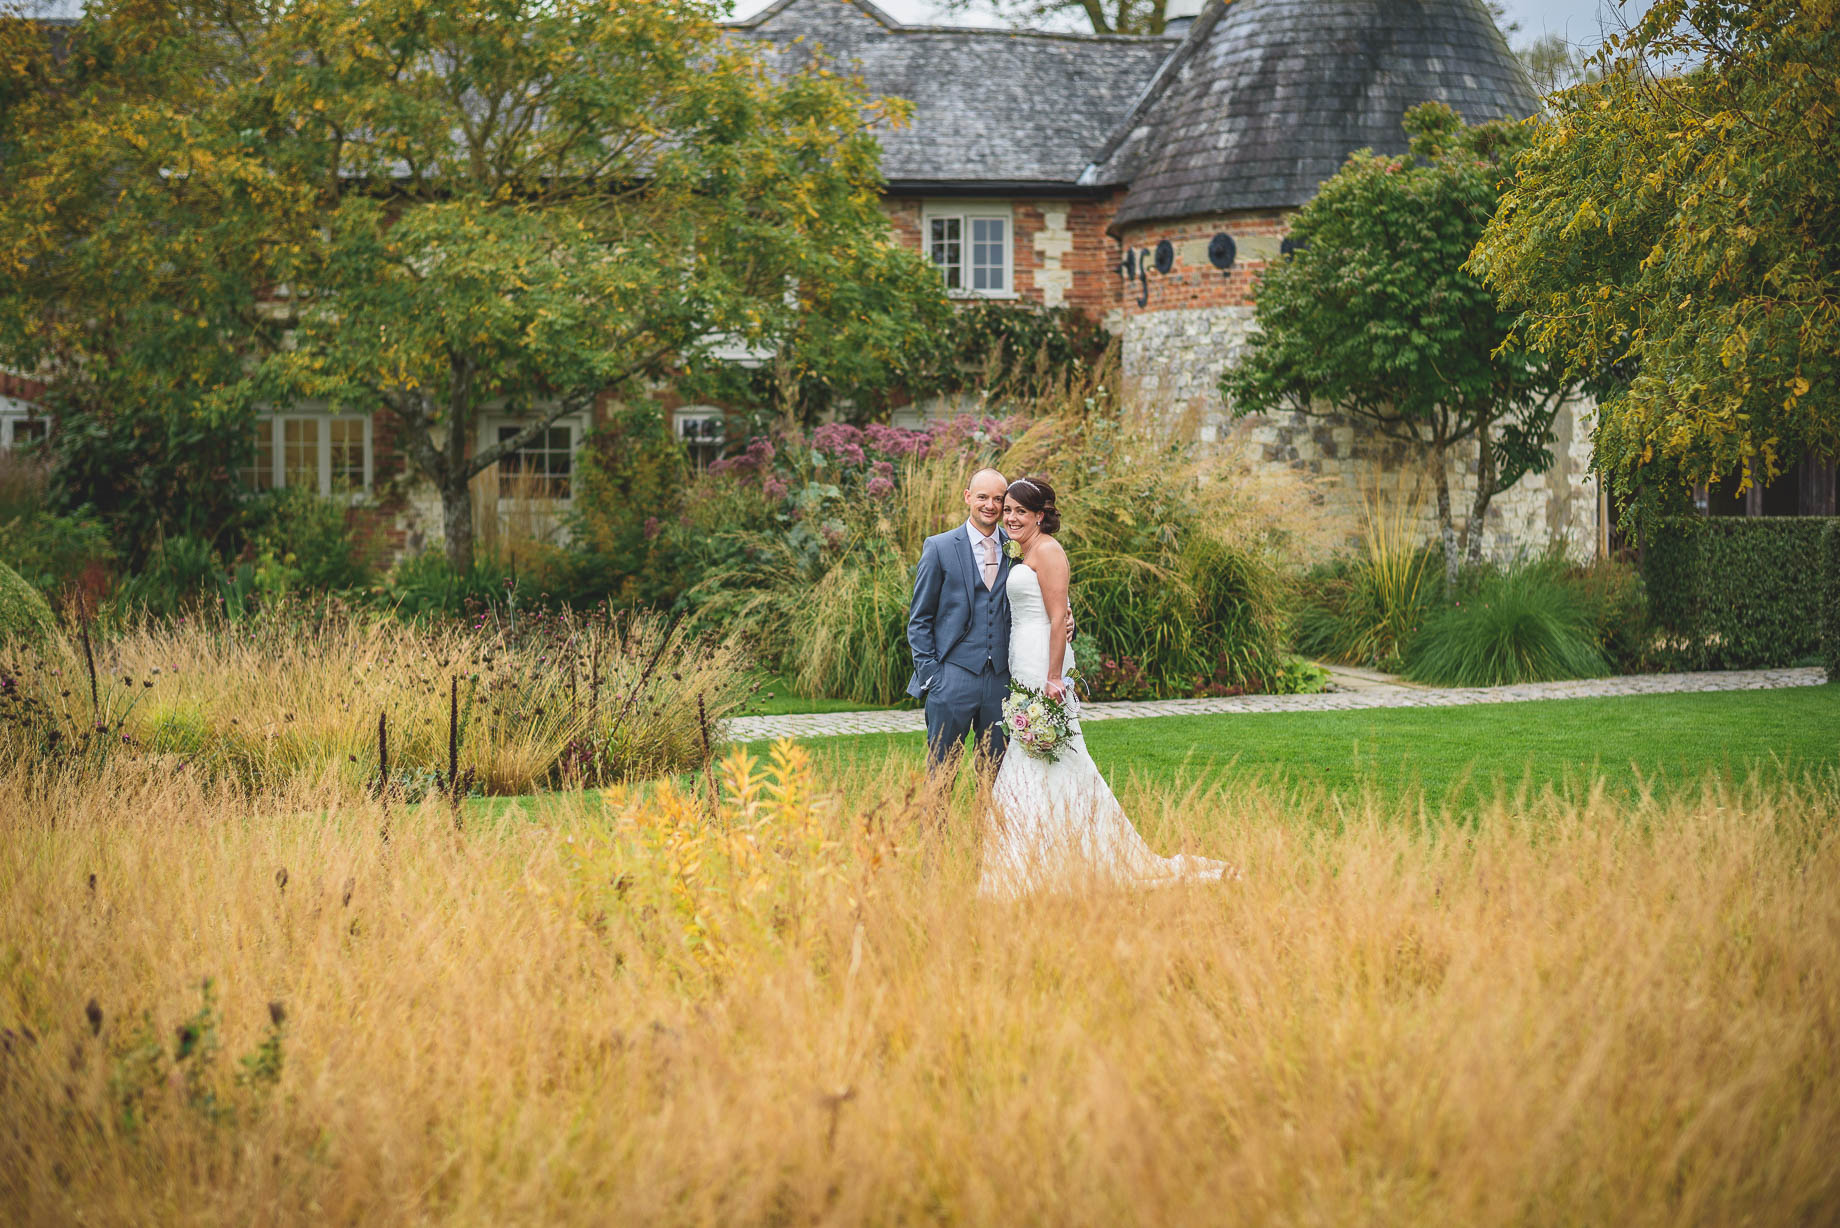 Bury Court Barn wedding photography - Guy Collier Photography - Karen and John (87 of 166)